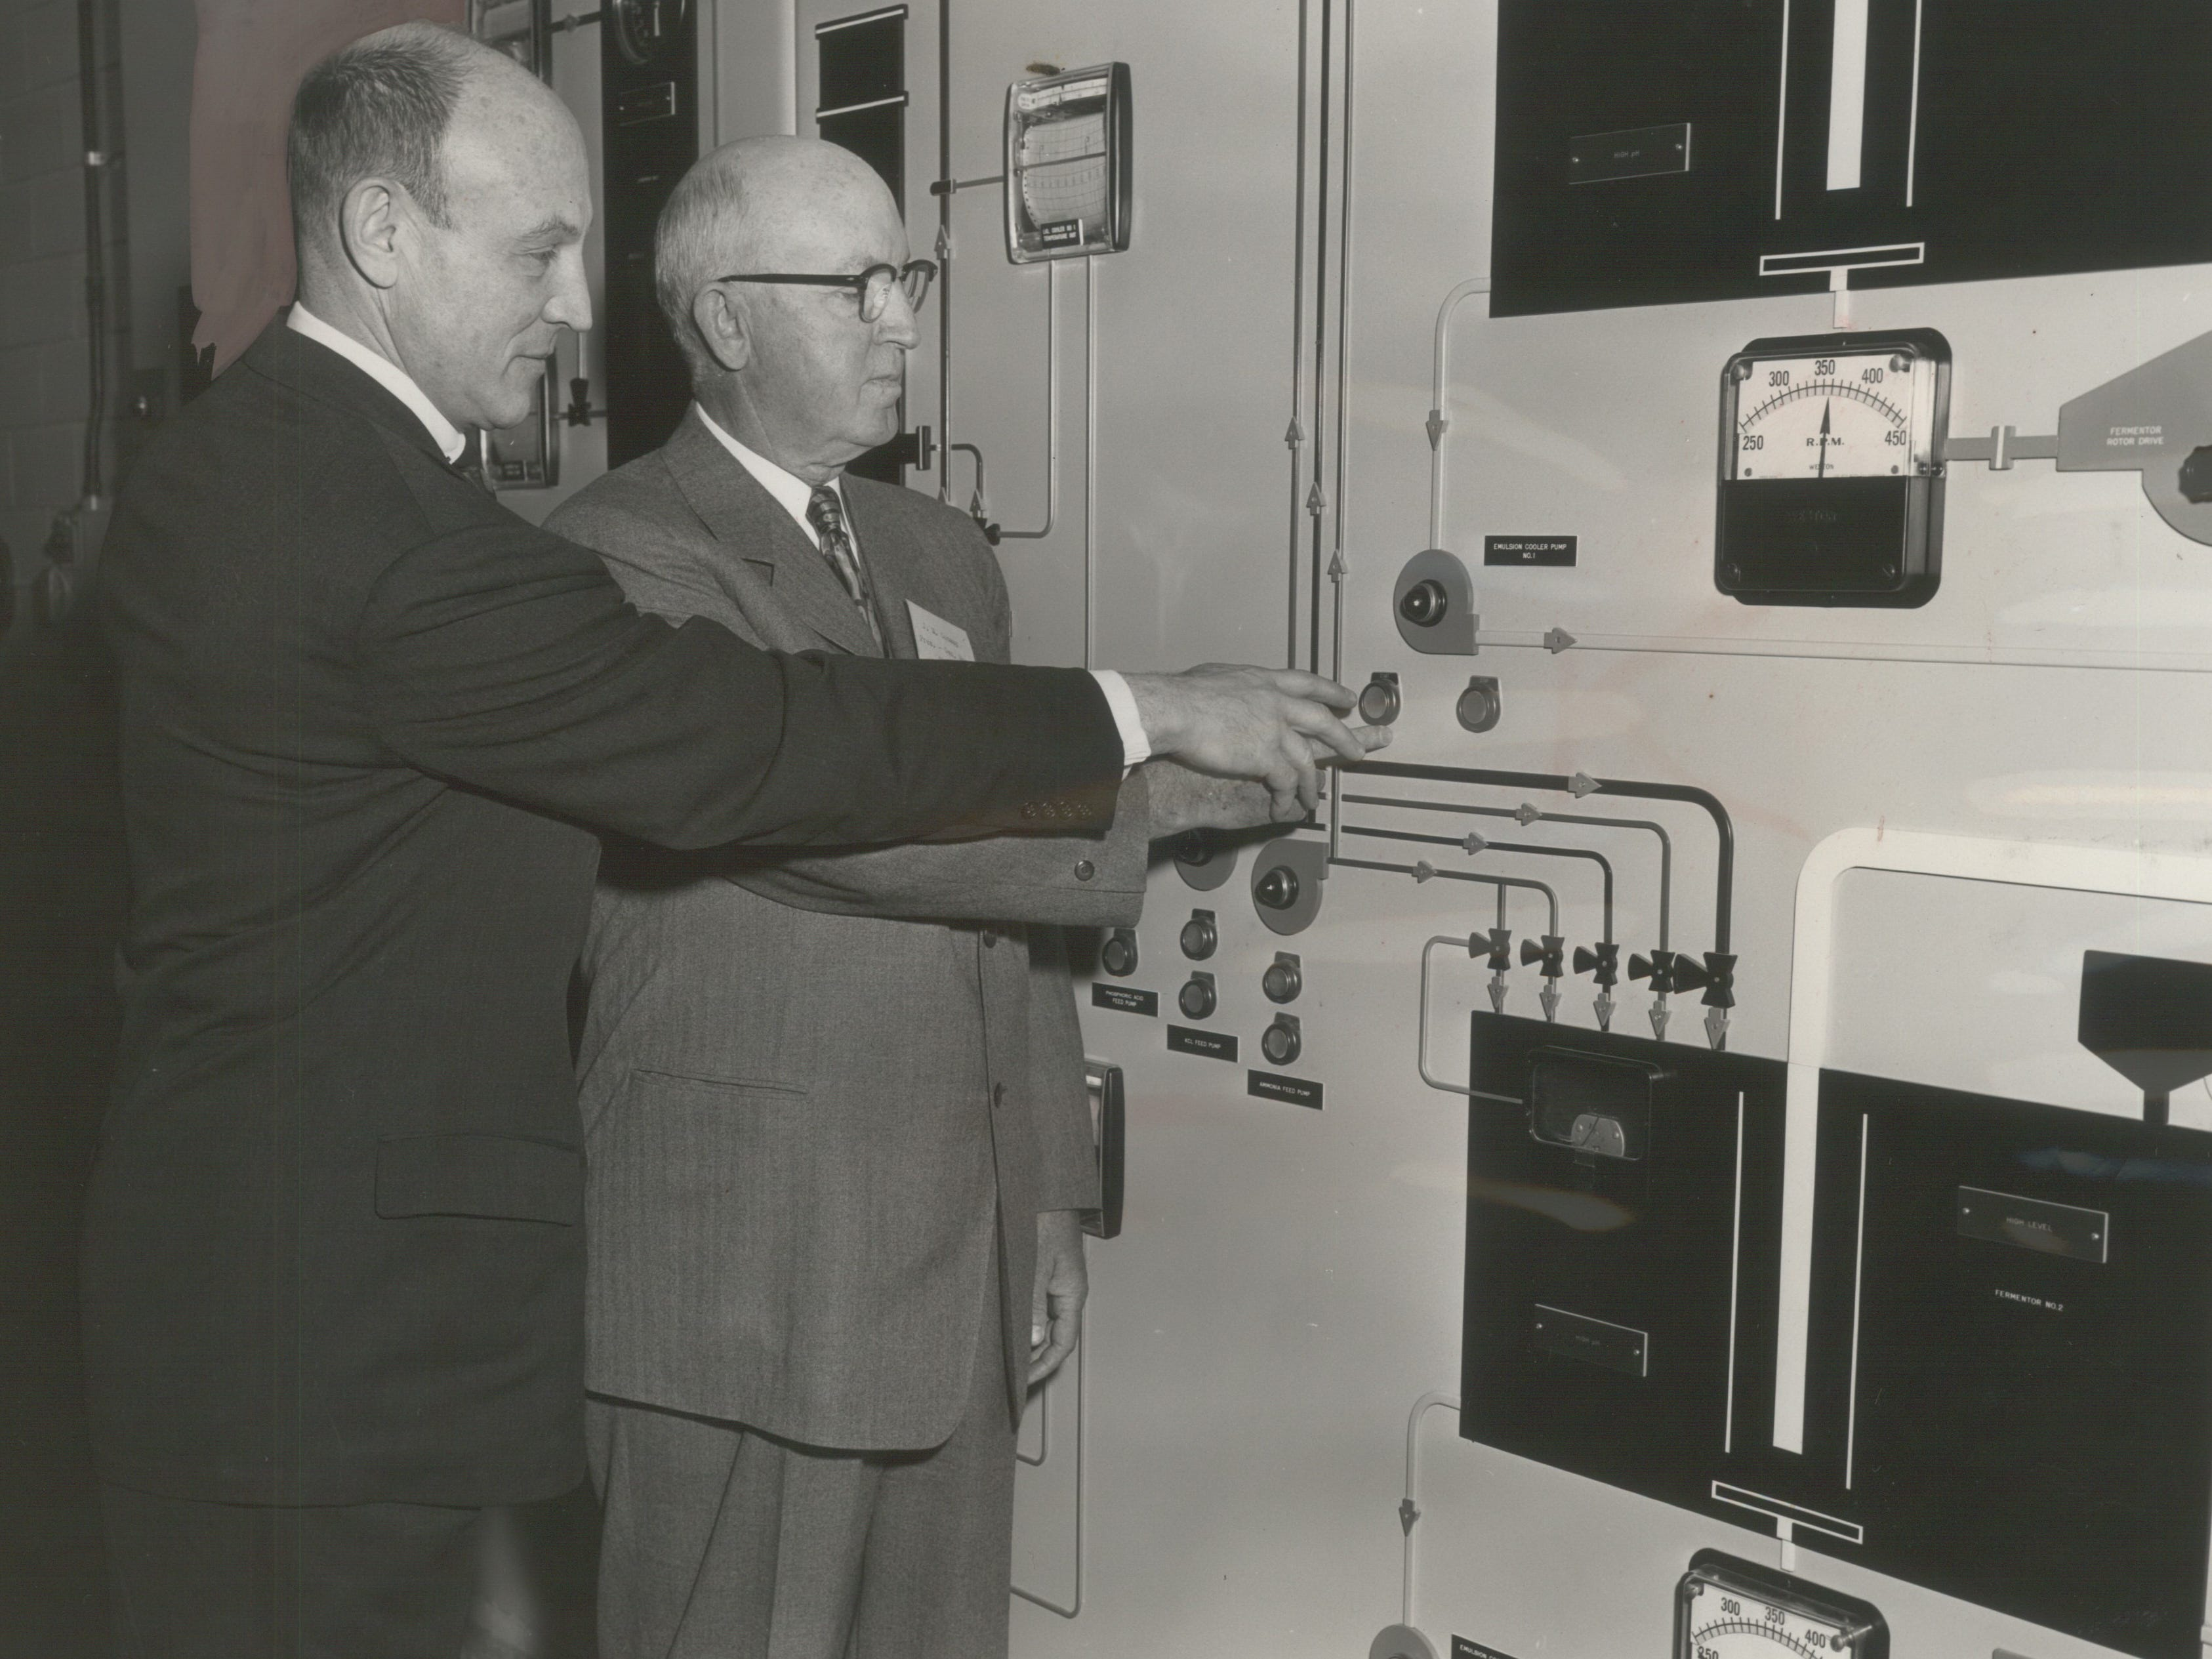 Russell D.L. Wirth (left), president of what was then Red Star Yeast Co., looks on as Charmin Paper Mills President J.M. Conway pushes the button to start production at a new torula yeast plant in Green Bay on April 14, 1955. Under Wirth's leadership Red Star Yeast expanded and diversified, acquiring Universal Foods and adopting that company's name in 1961. This photo was published in the April 15, 1955, Milwaukee Journal.